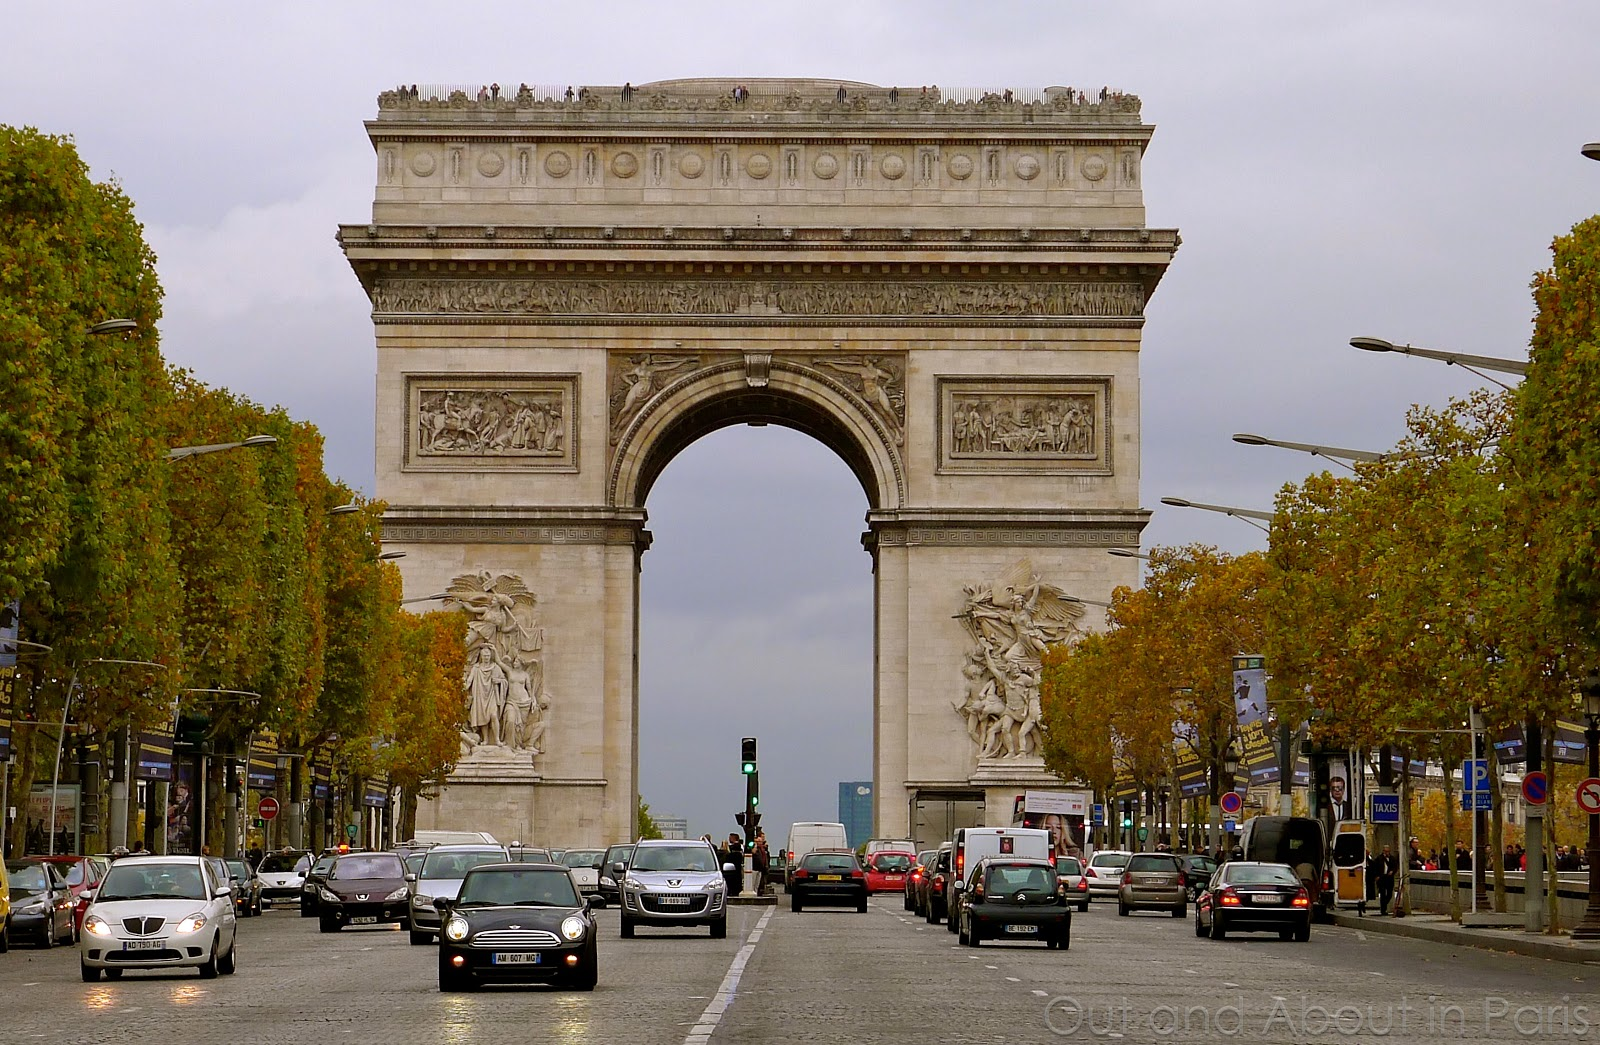 Can the Arc de Triomphe fit inside the Opéra Garnier?